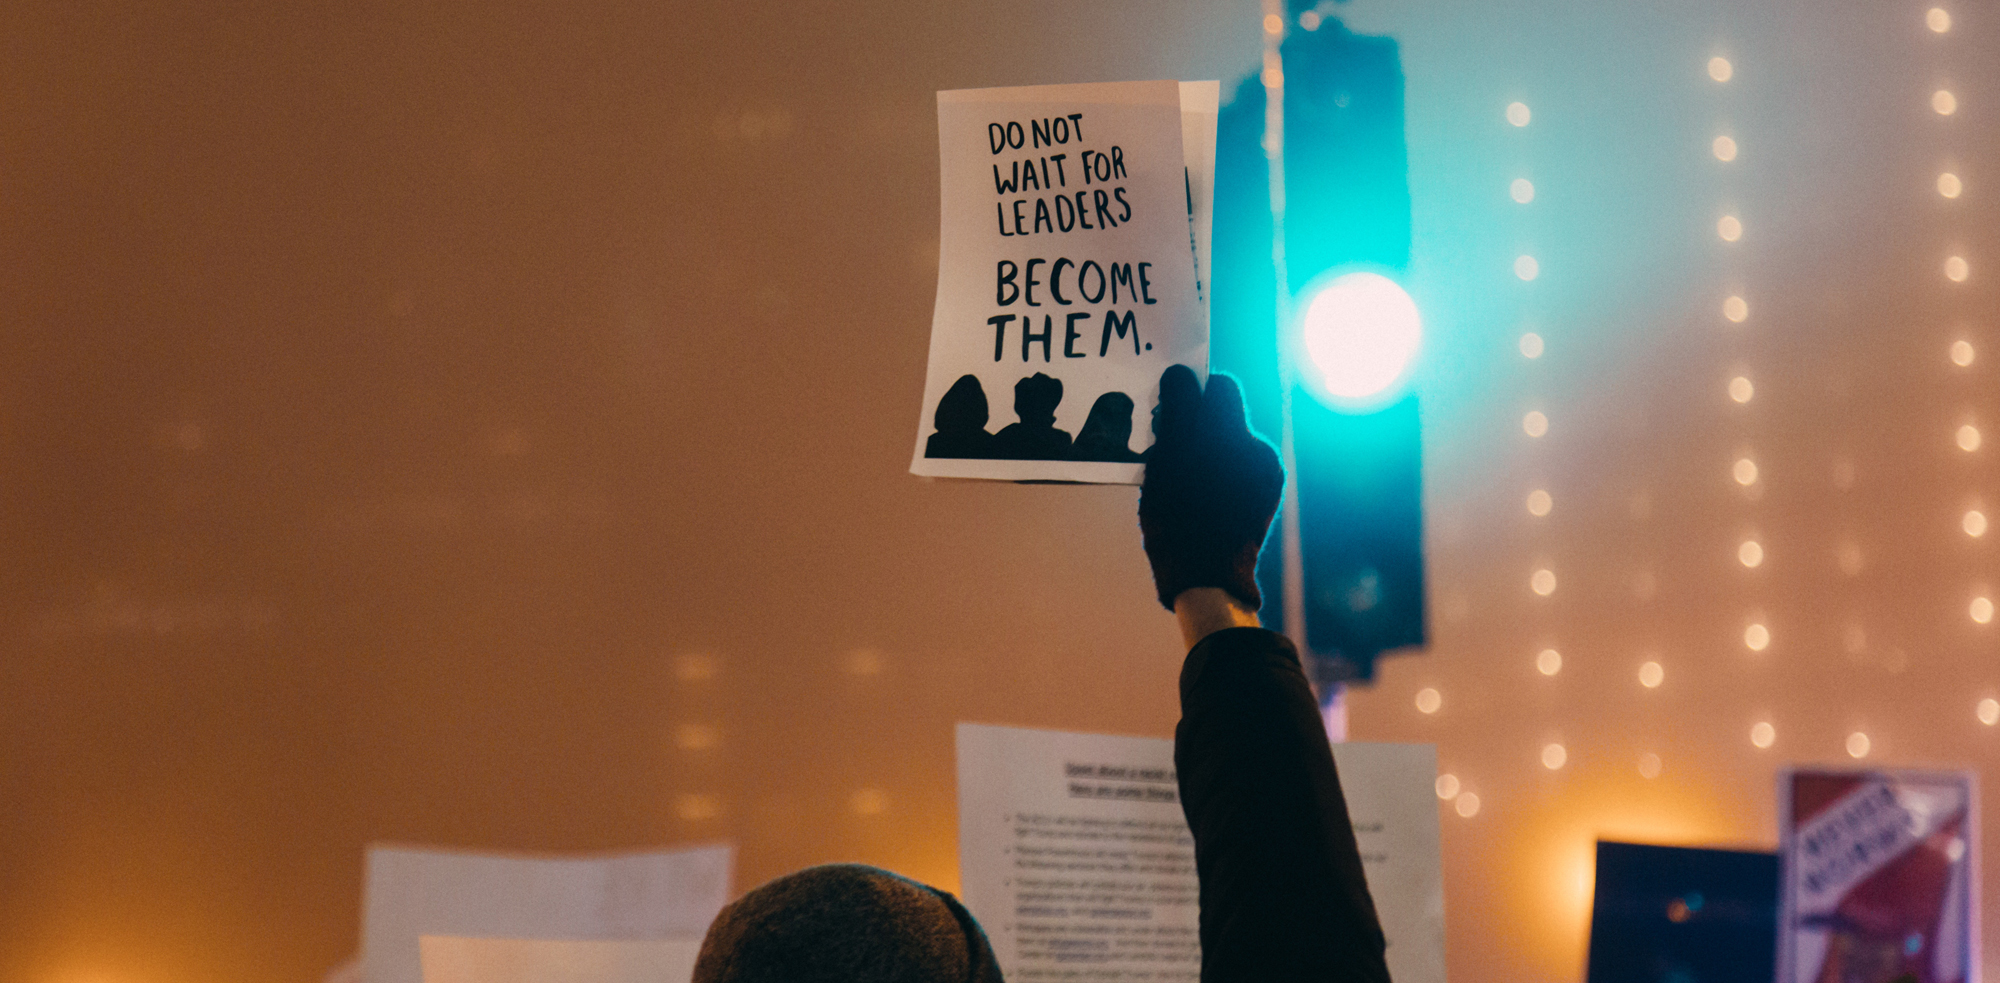 """A woman with a gloved hand holding a paper that says """"DO NOT WAIT FOR LEADERS - BECOME THEM."""" (Photo by rob walsh on Unsplash)"""